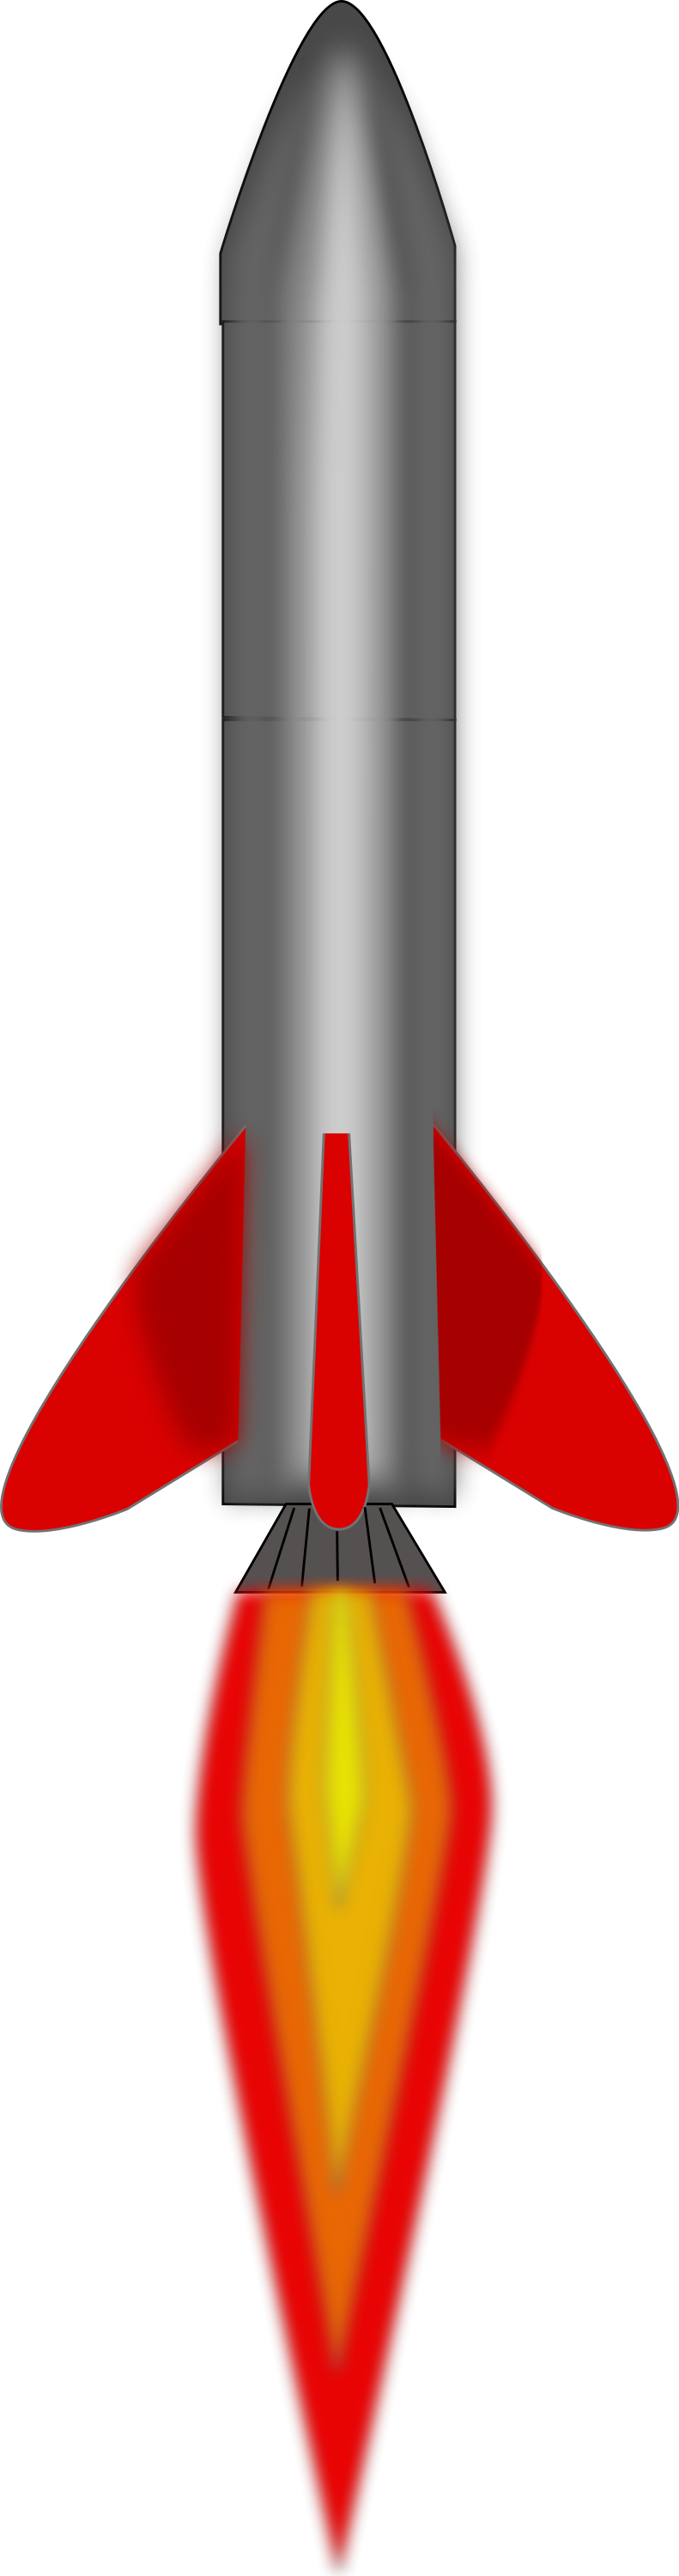 Free Stock Photo: Illustration of a red rocket with a transparent ...